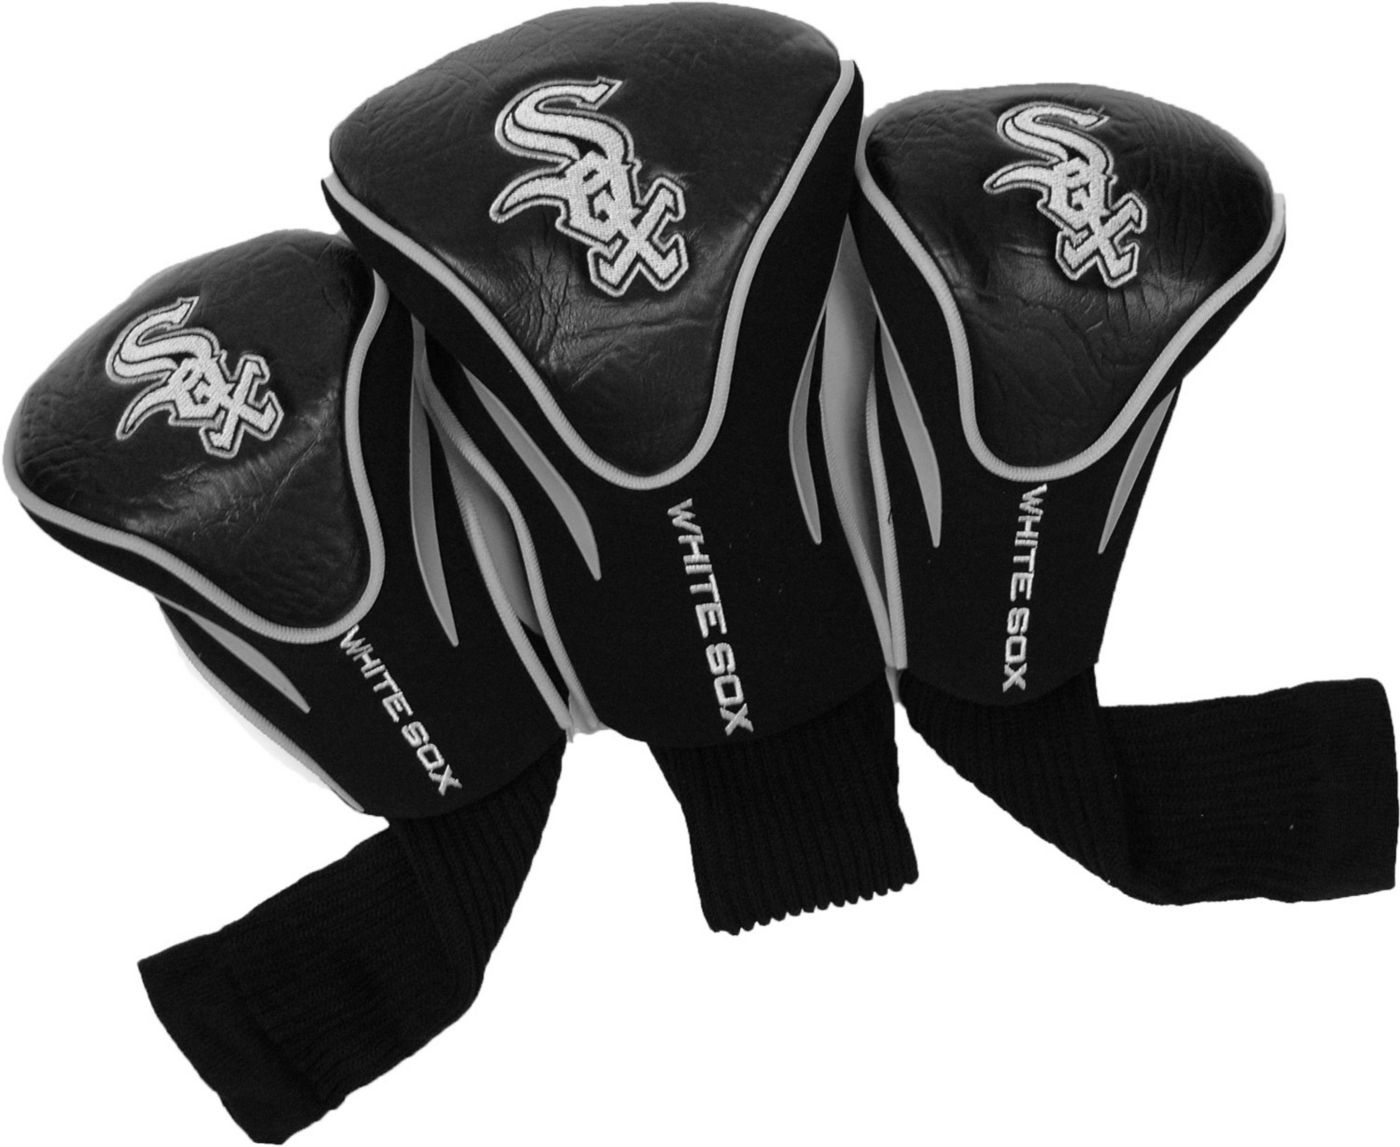 Team Golf Chicago White Sox Contour Sock Headcovers - 3 Pack